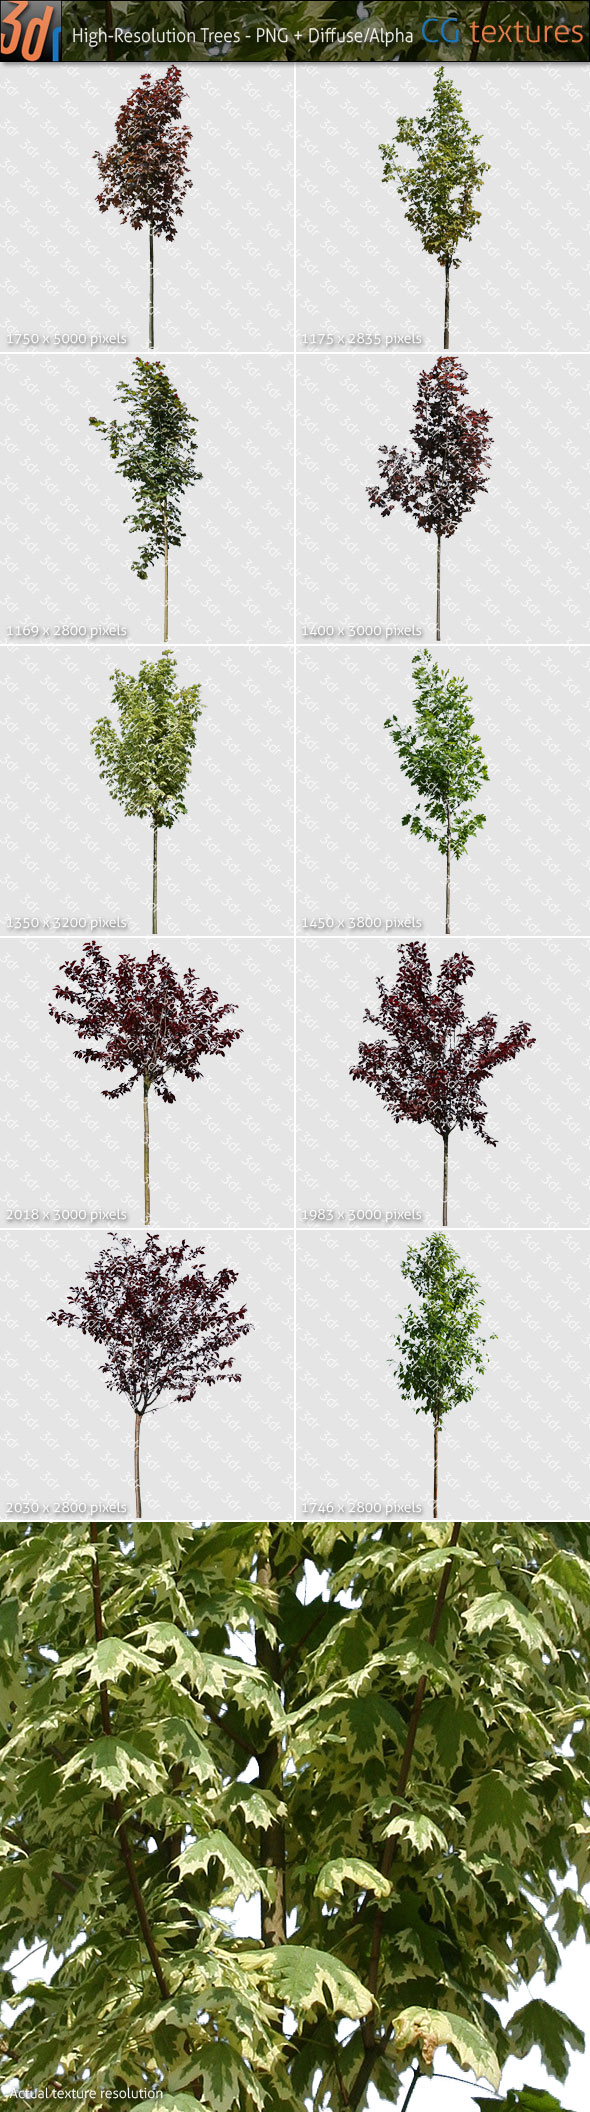 3DOcean Trees Textures Hi-Res Collection 01 102988